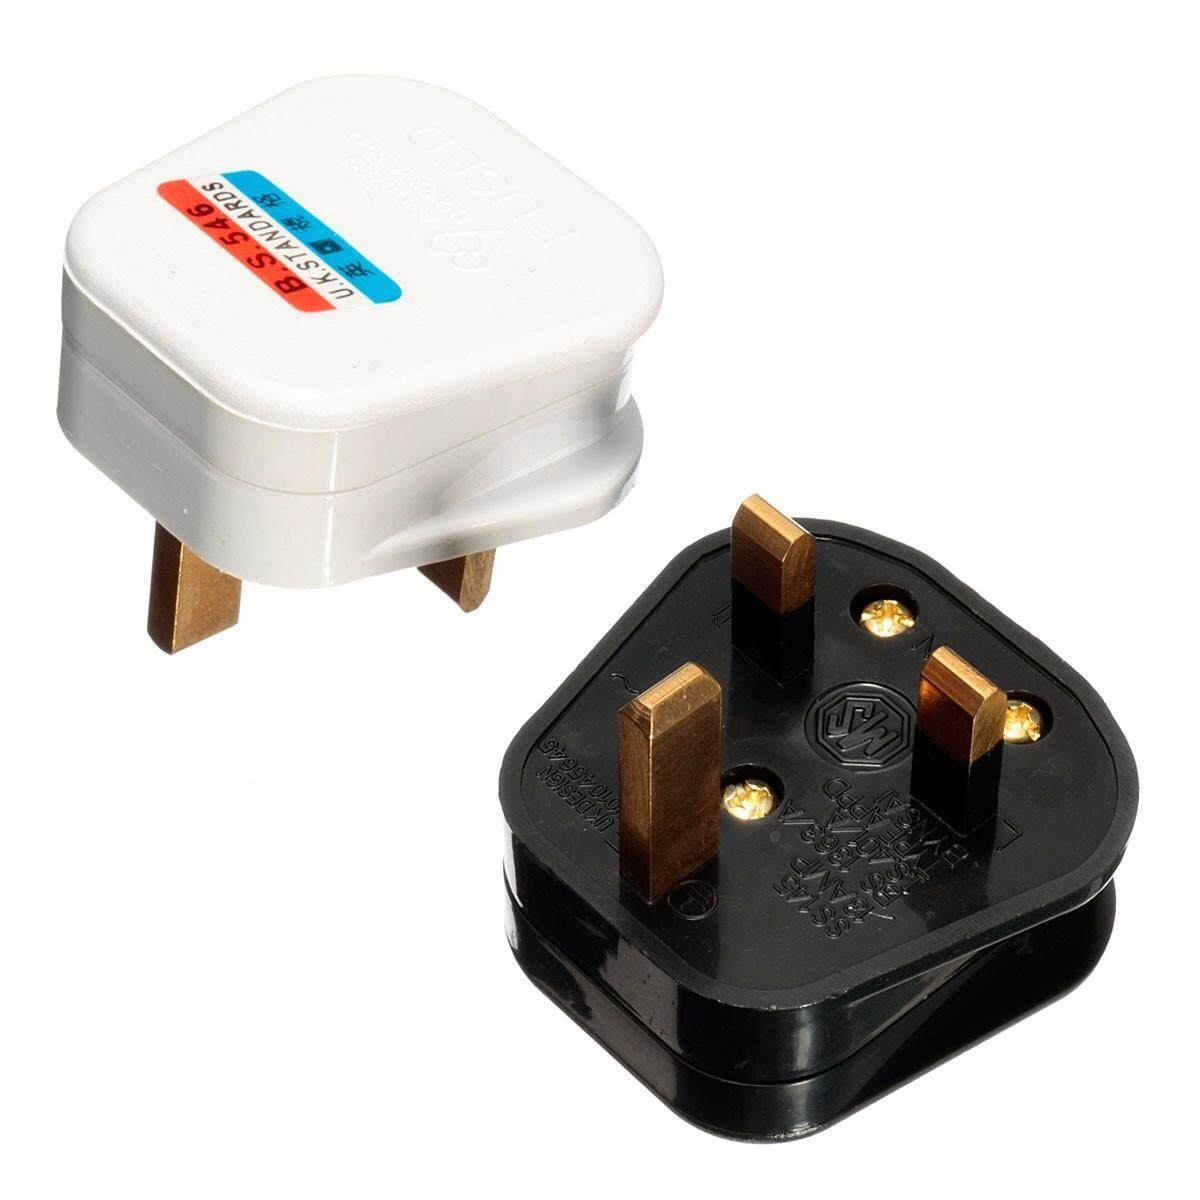 13A Plug Top UK Standard 3 Pin Plug Top BS Standard 13A Plug Top